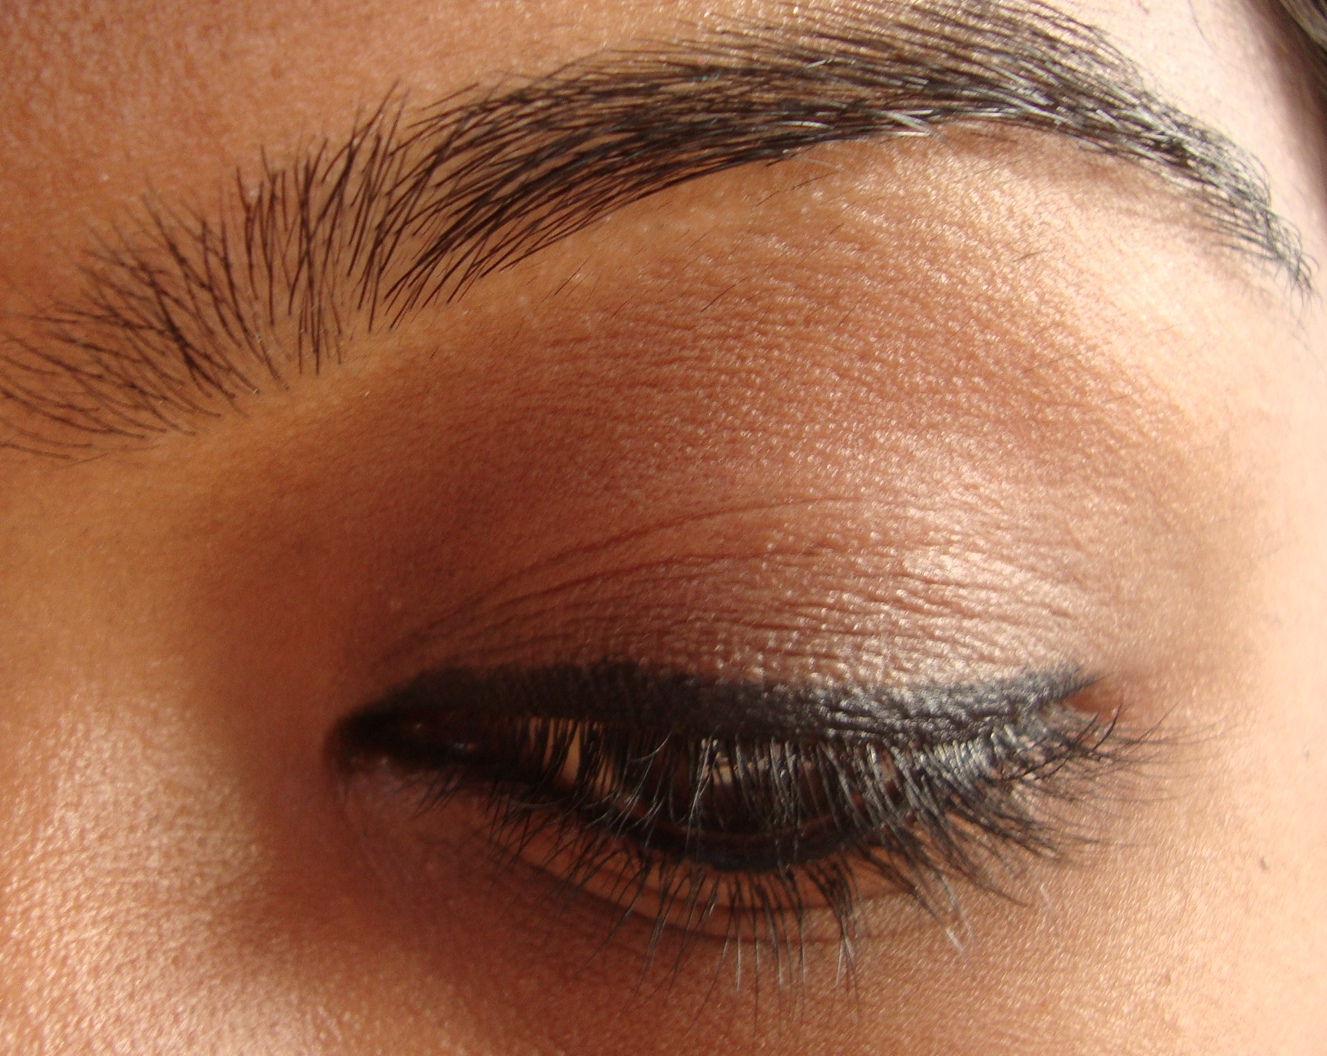 Faces Kohl - Solid Black on upper lash line